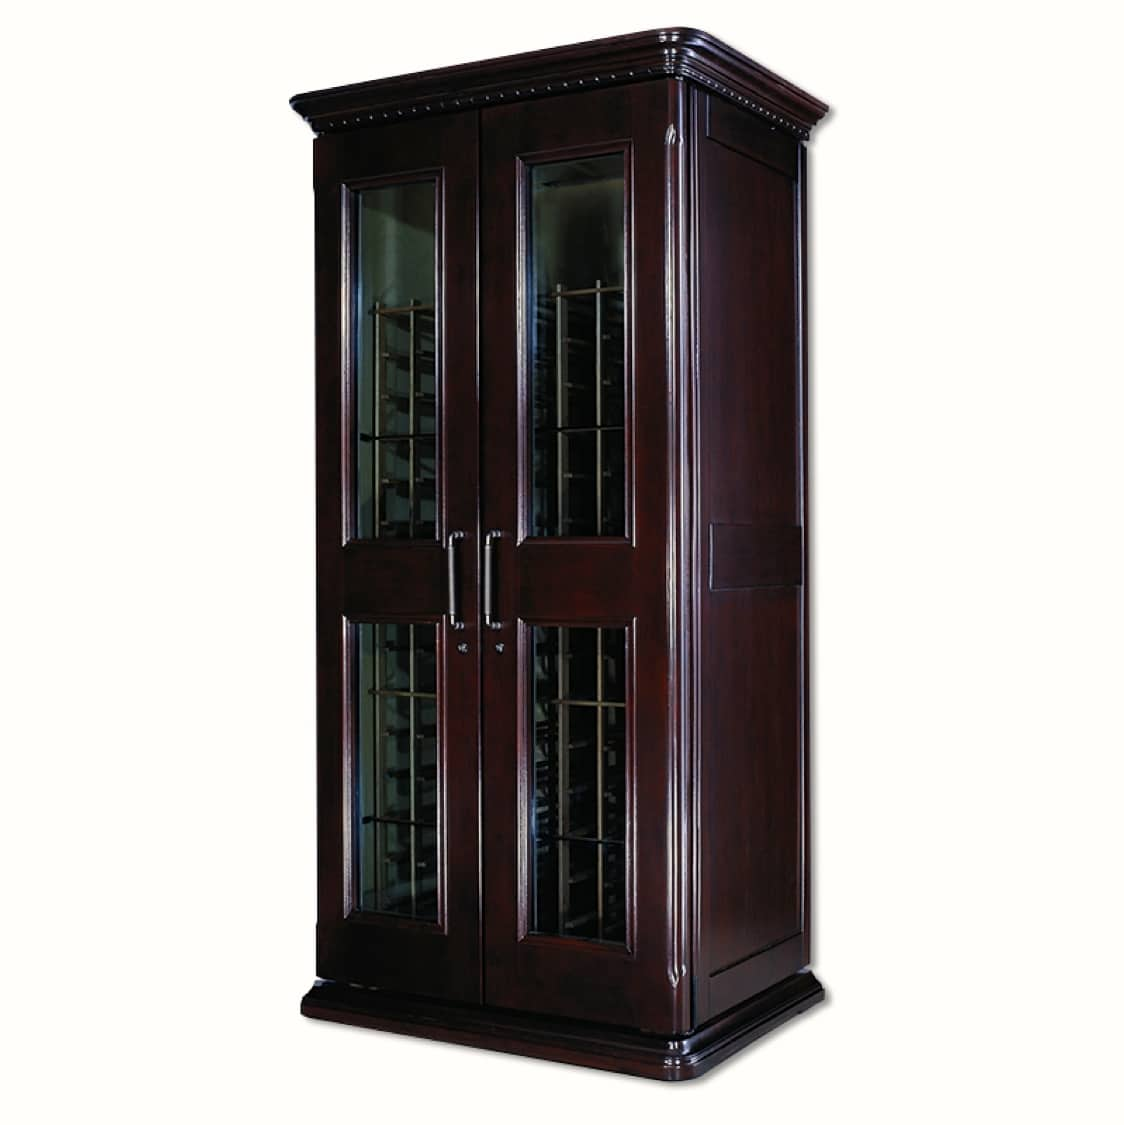 6. Le Cache Euro 2400 Wine Cabinet Chocolate Cherry, #747